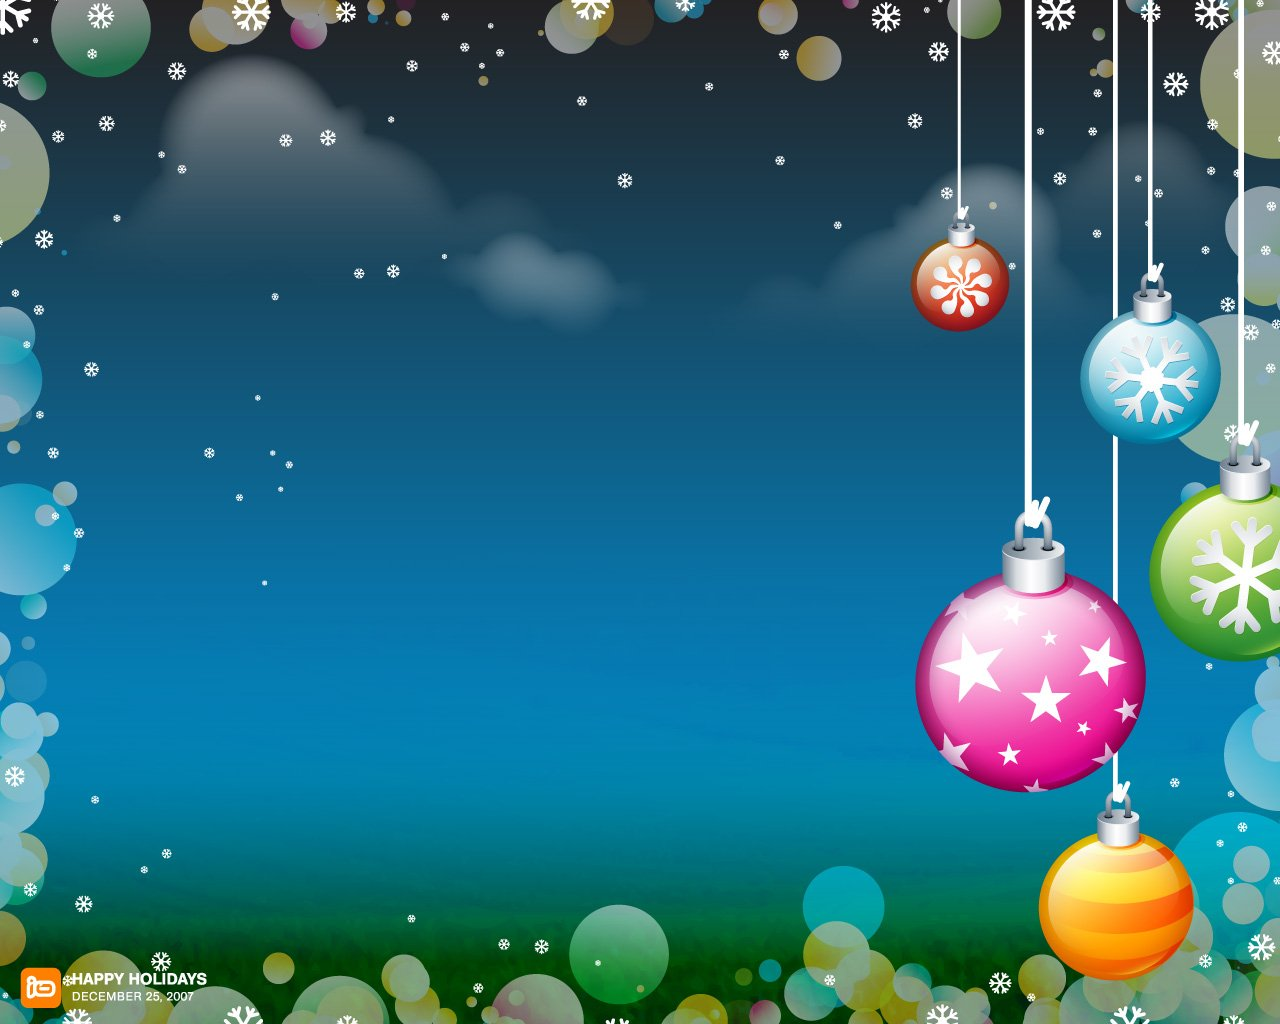 Christmas Holiday Backgrounds Wallpapers Wallpapers High Definition 1280x1024